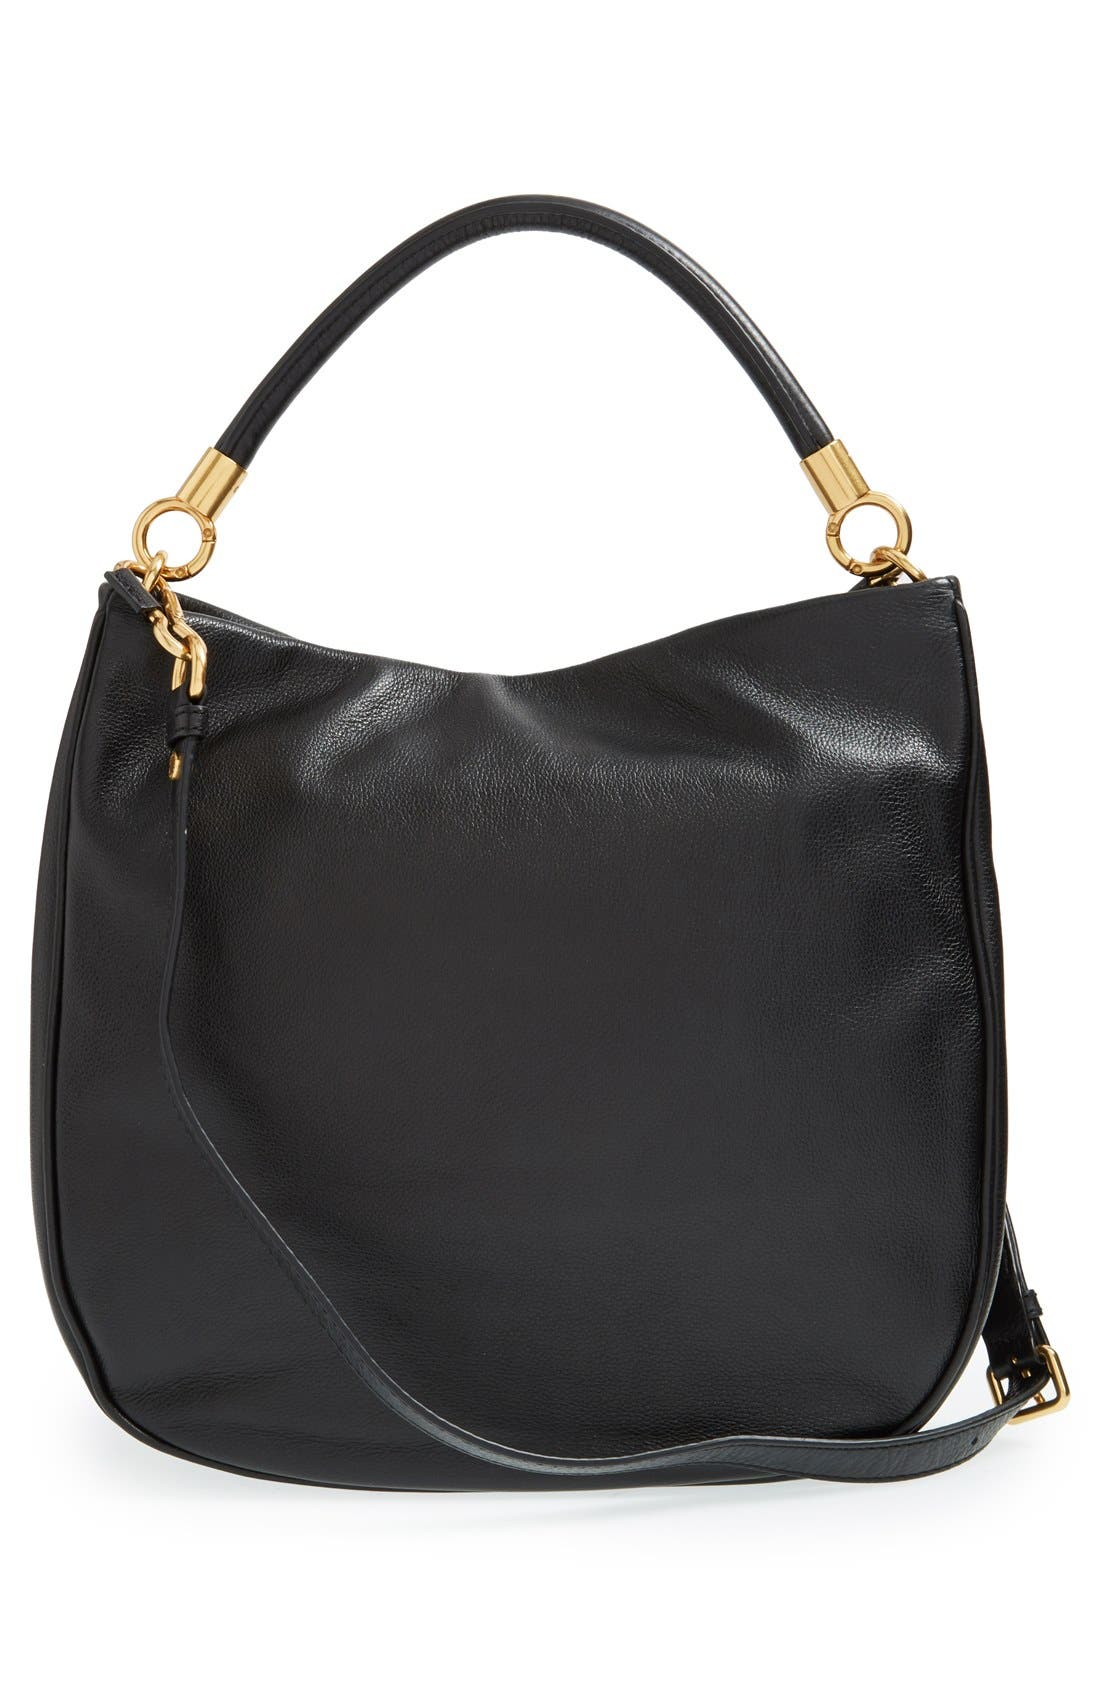 MARC BY MARC JACOBS 'Too Hot to Handle' Hobo,                             Alternate thumbnail 4, color,                             001